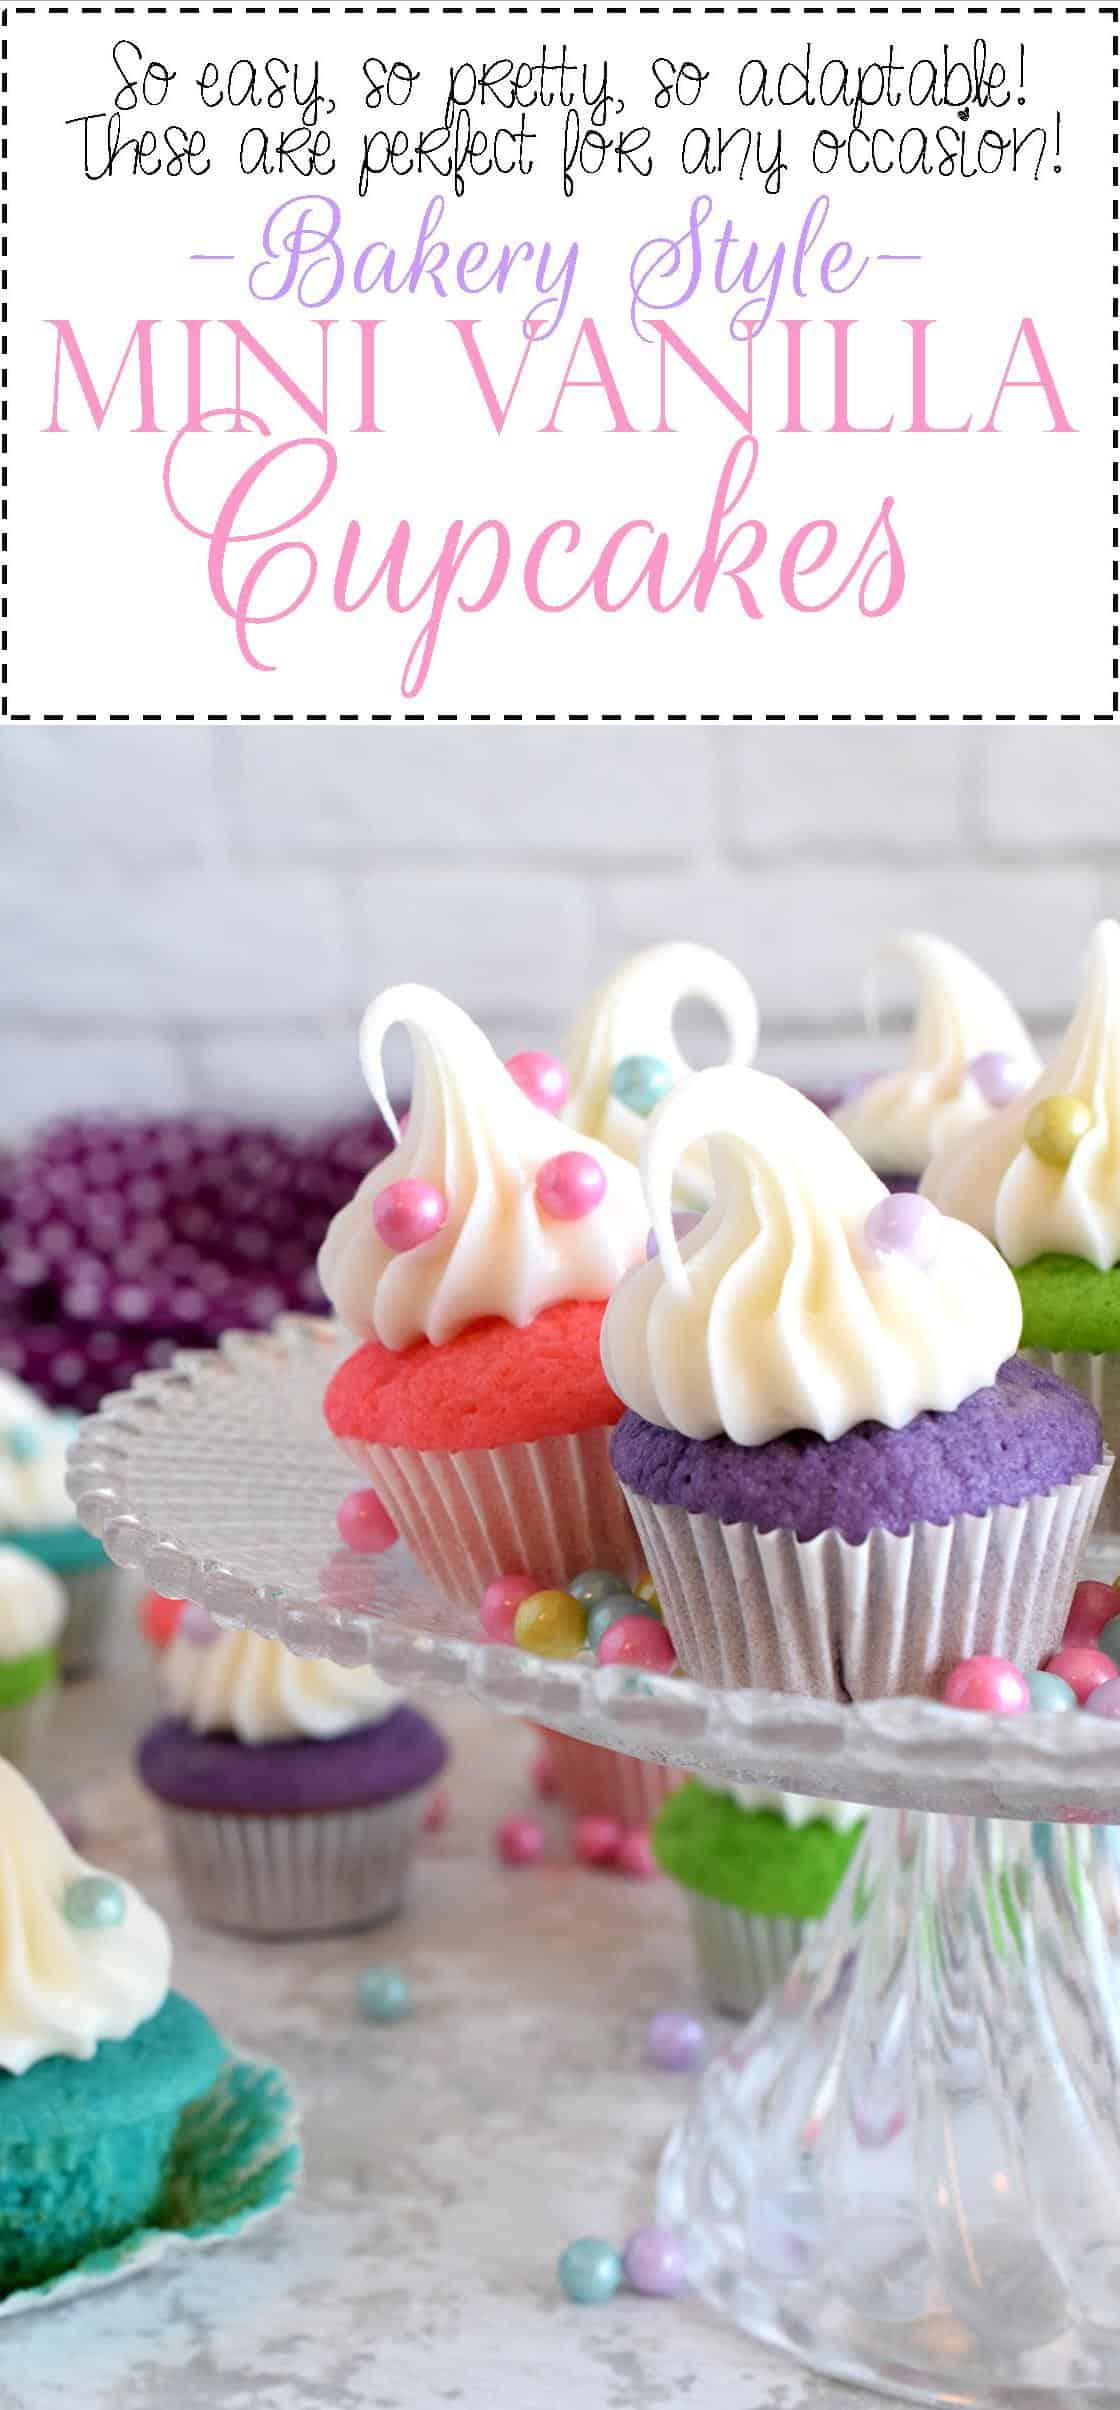 a-classic-vanilla-cupcake-recipe-which-has-been-all-gussied-up-for-a-delightful-springtime-affair-bakery-style-mini-vanilla-cupcakes-are-super-easy-and